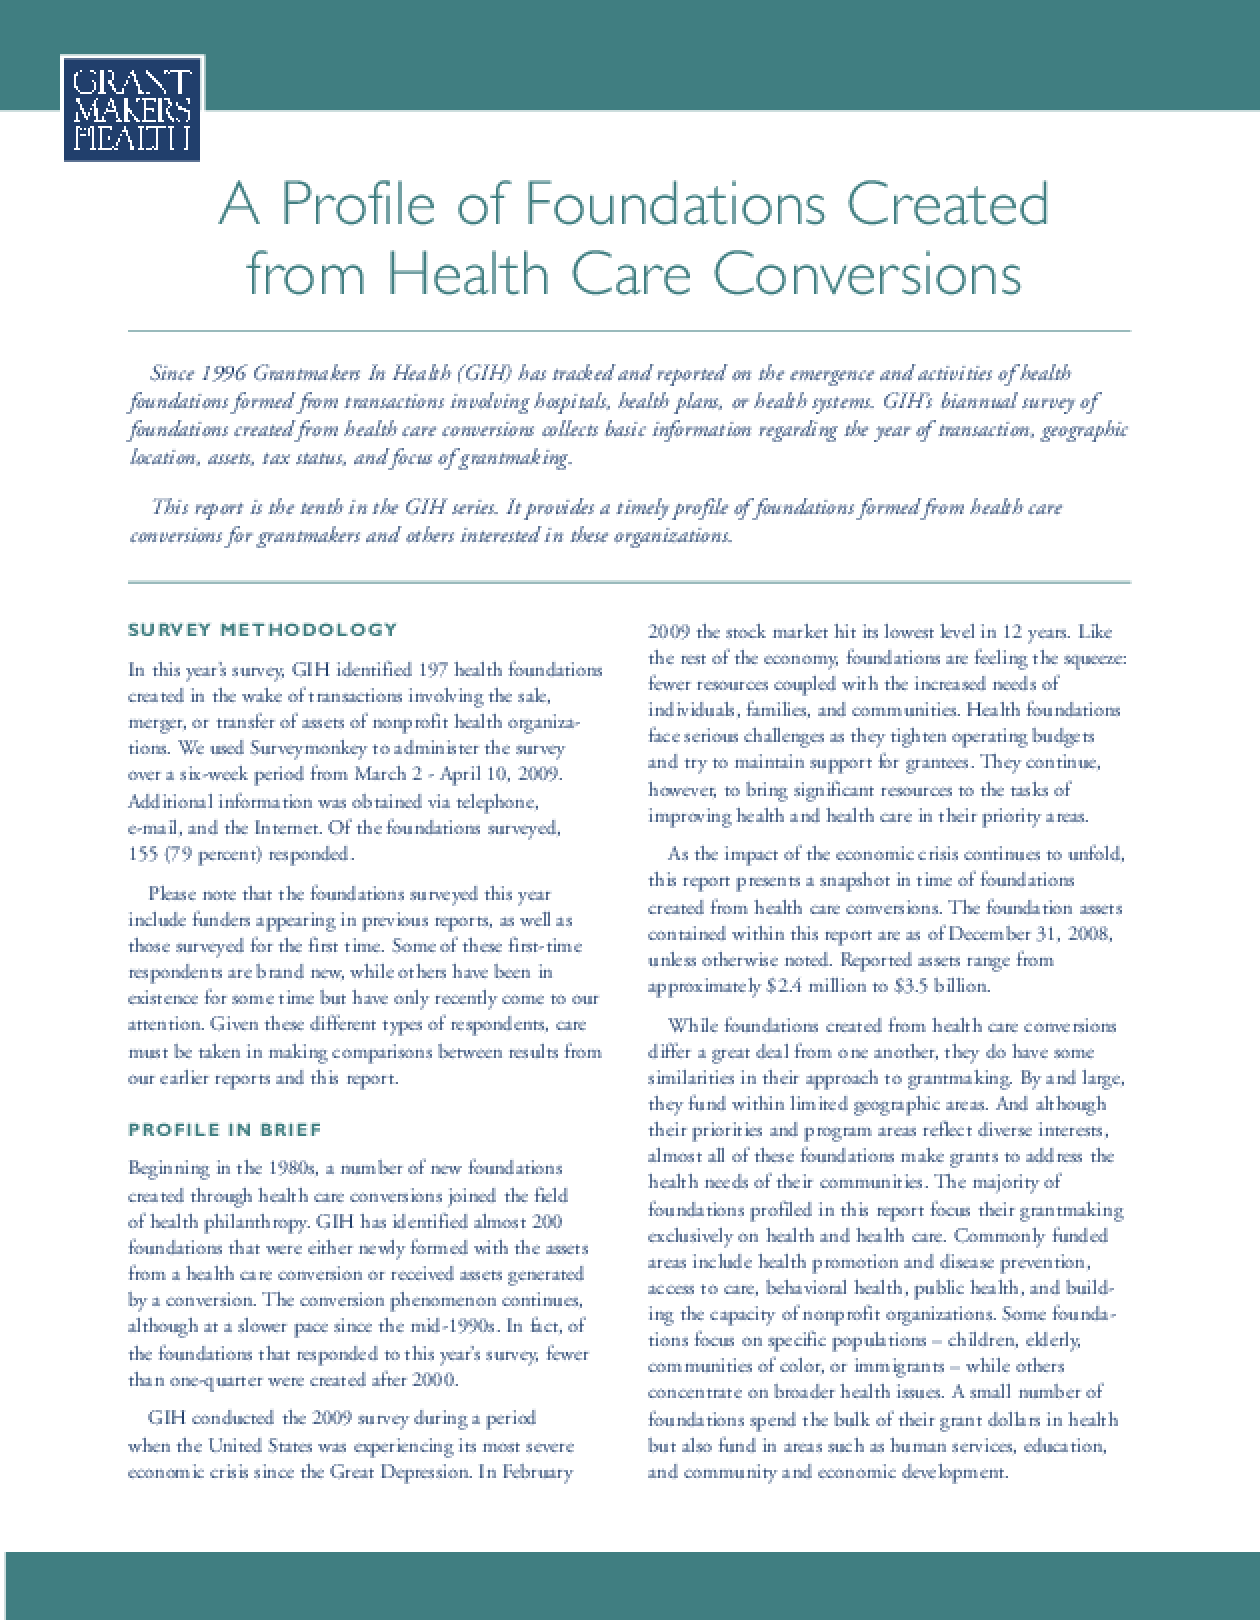 A Profile of Foundations Created From Health Care Conversions